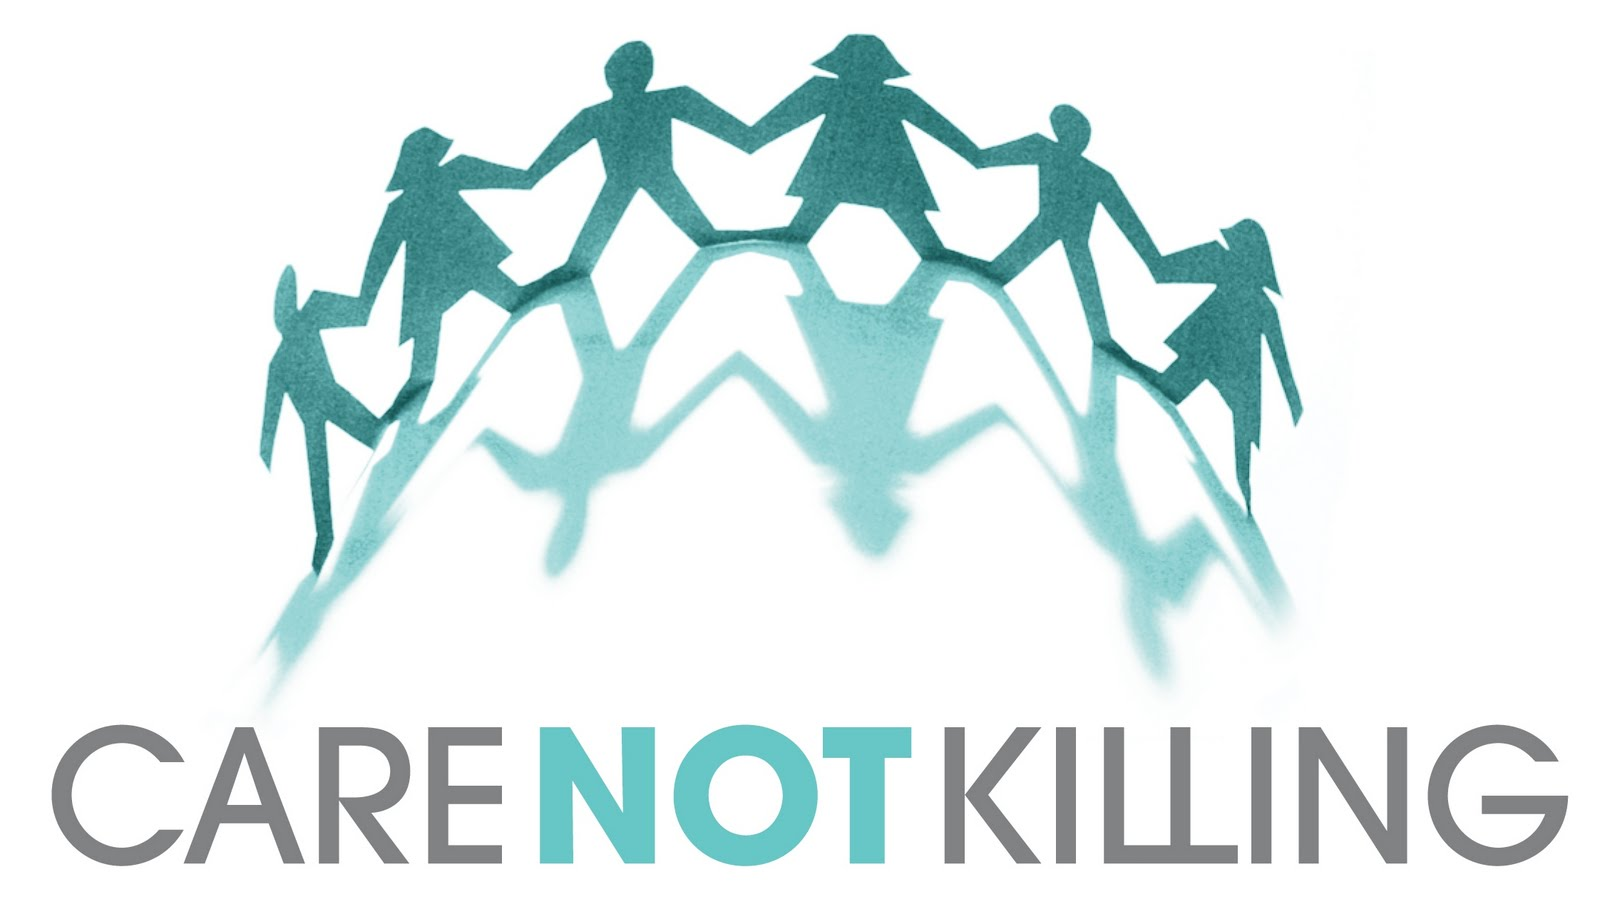 Care Not Killing logo